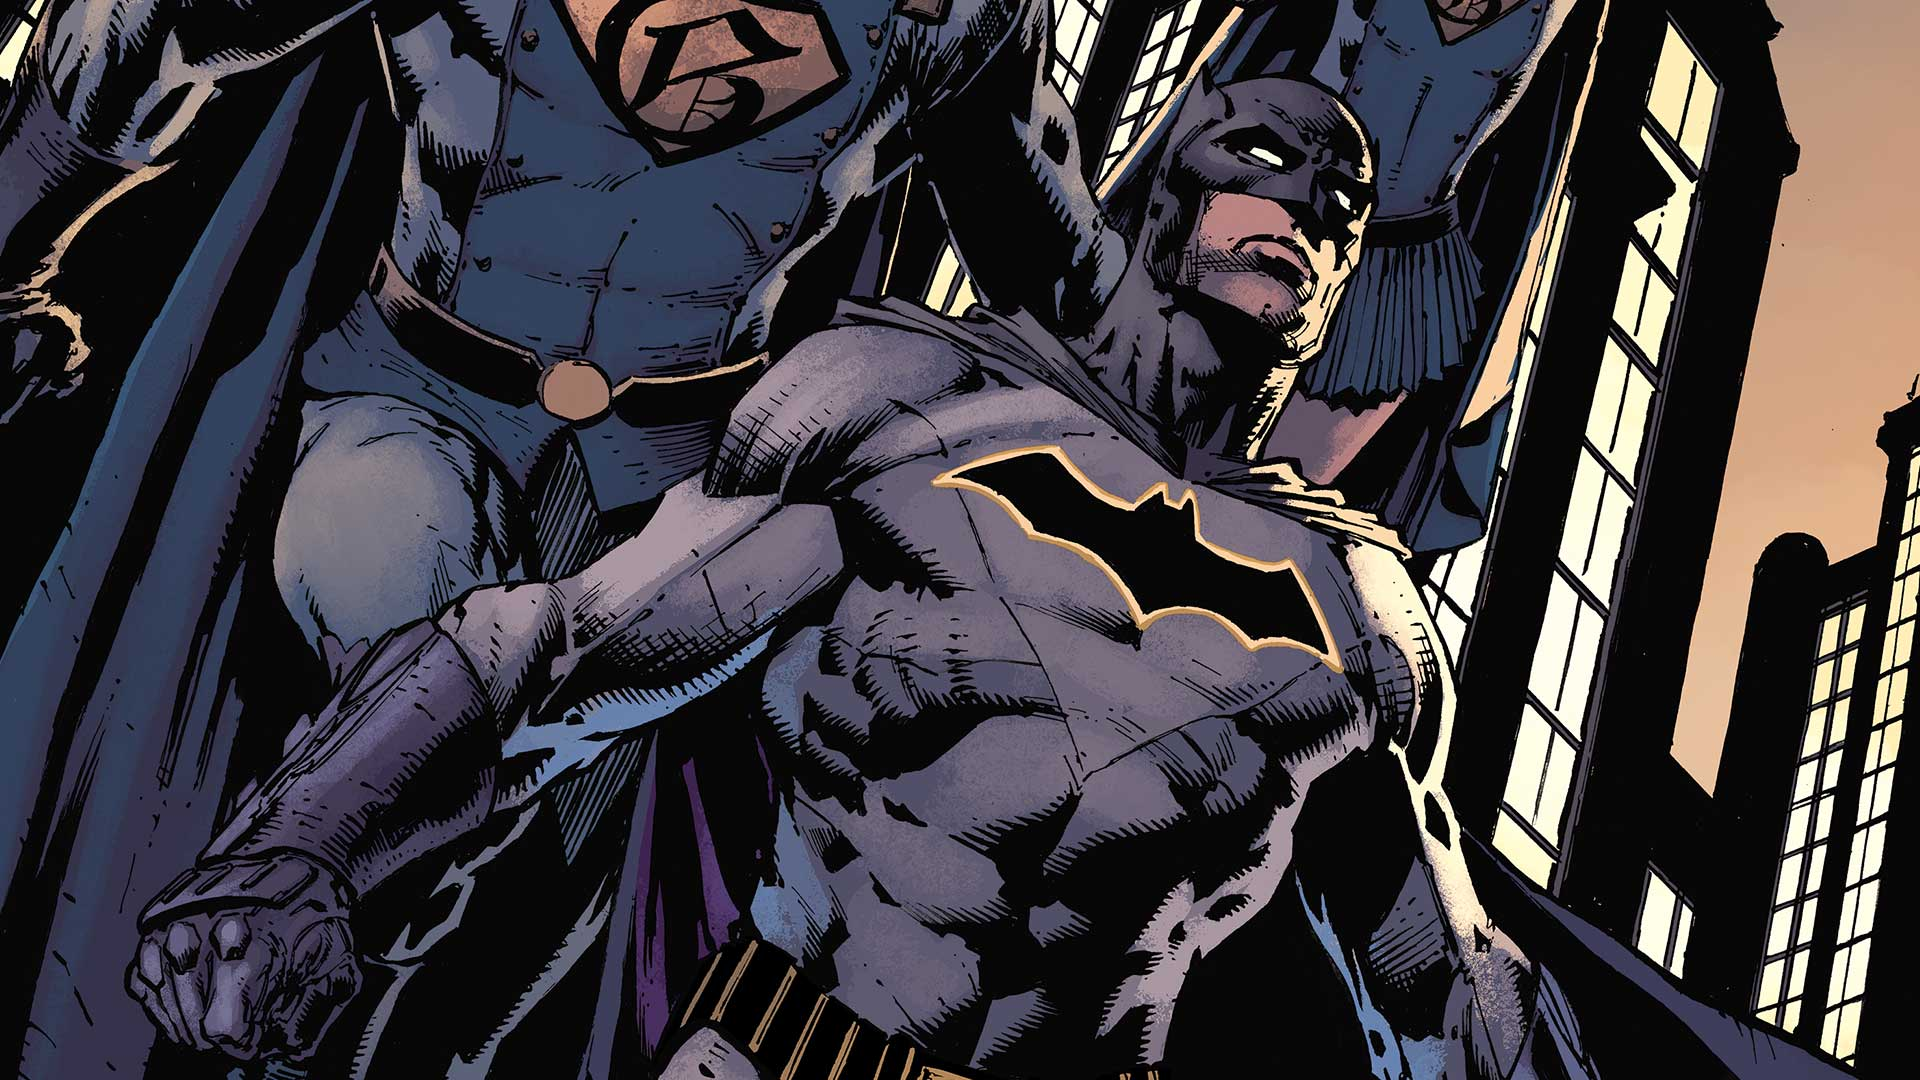 Cropped cover of Batman #2 showing Batman clenching his fists and showing his chest logo